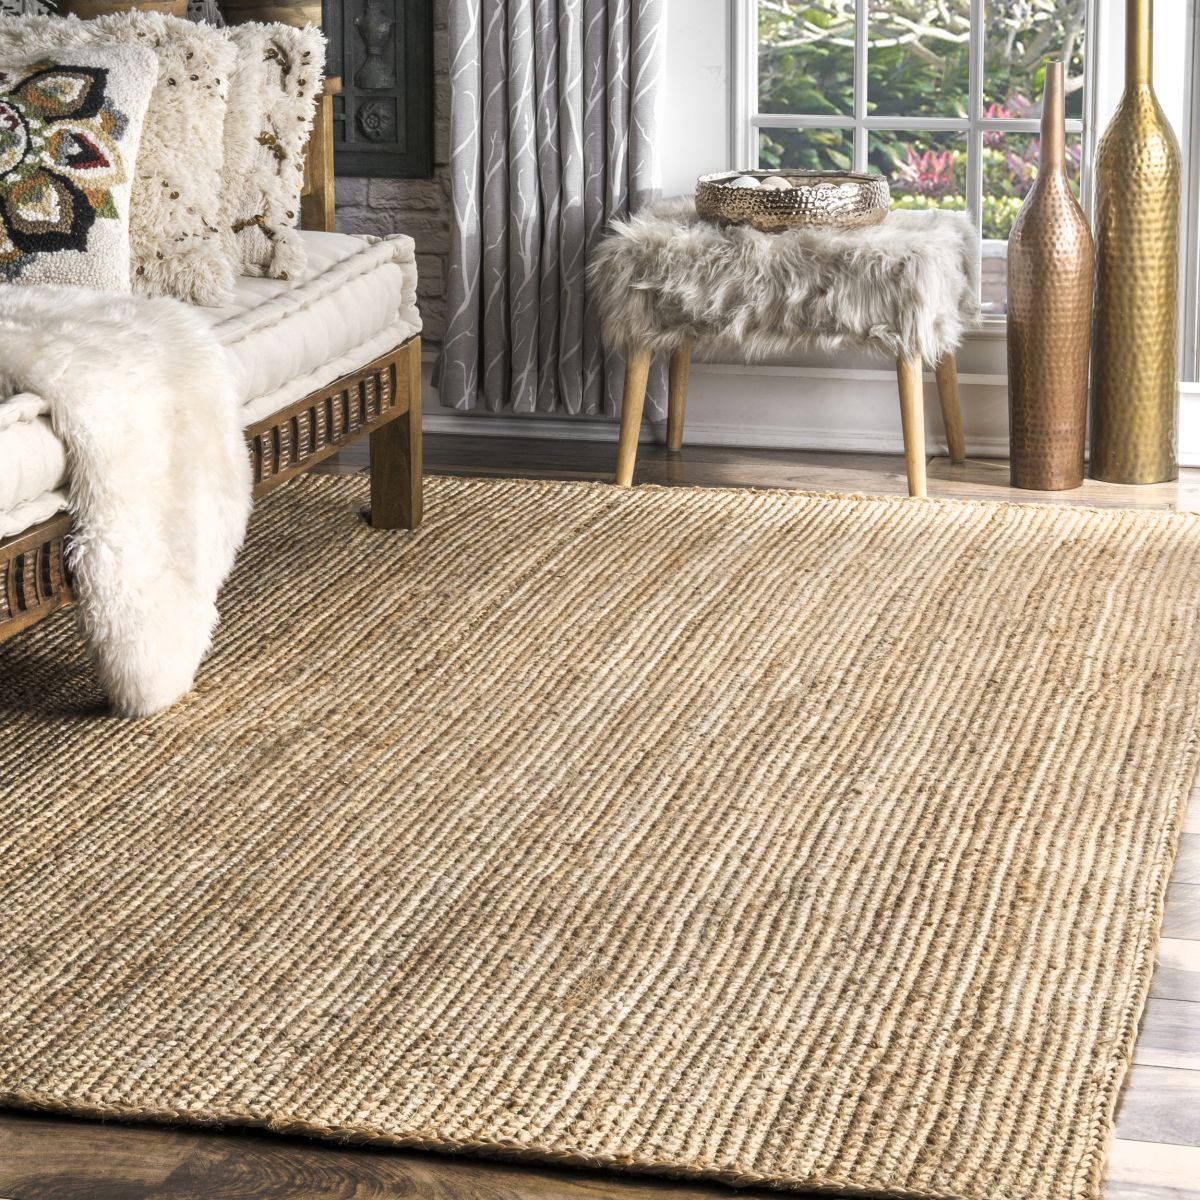 Natural Jute Braided Area Rug